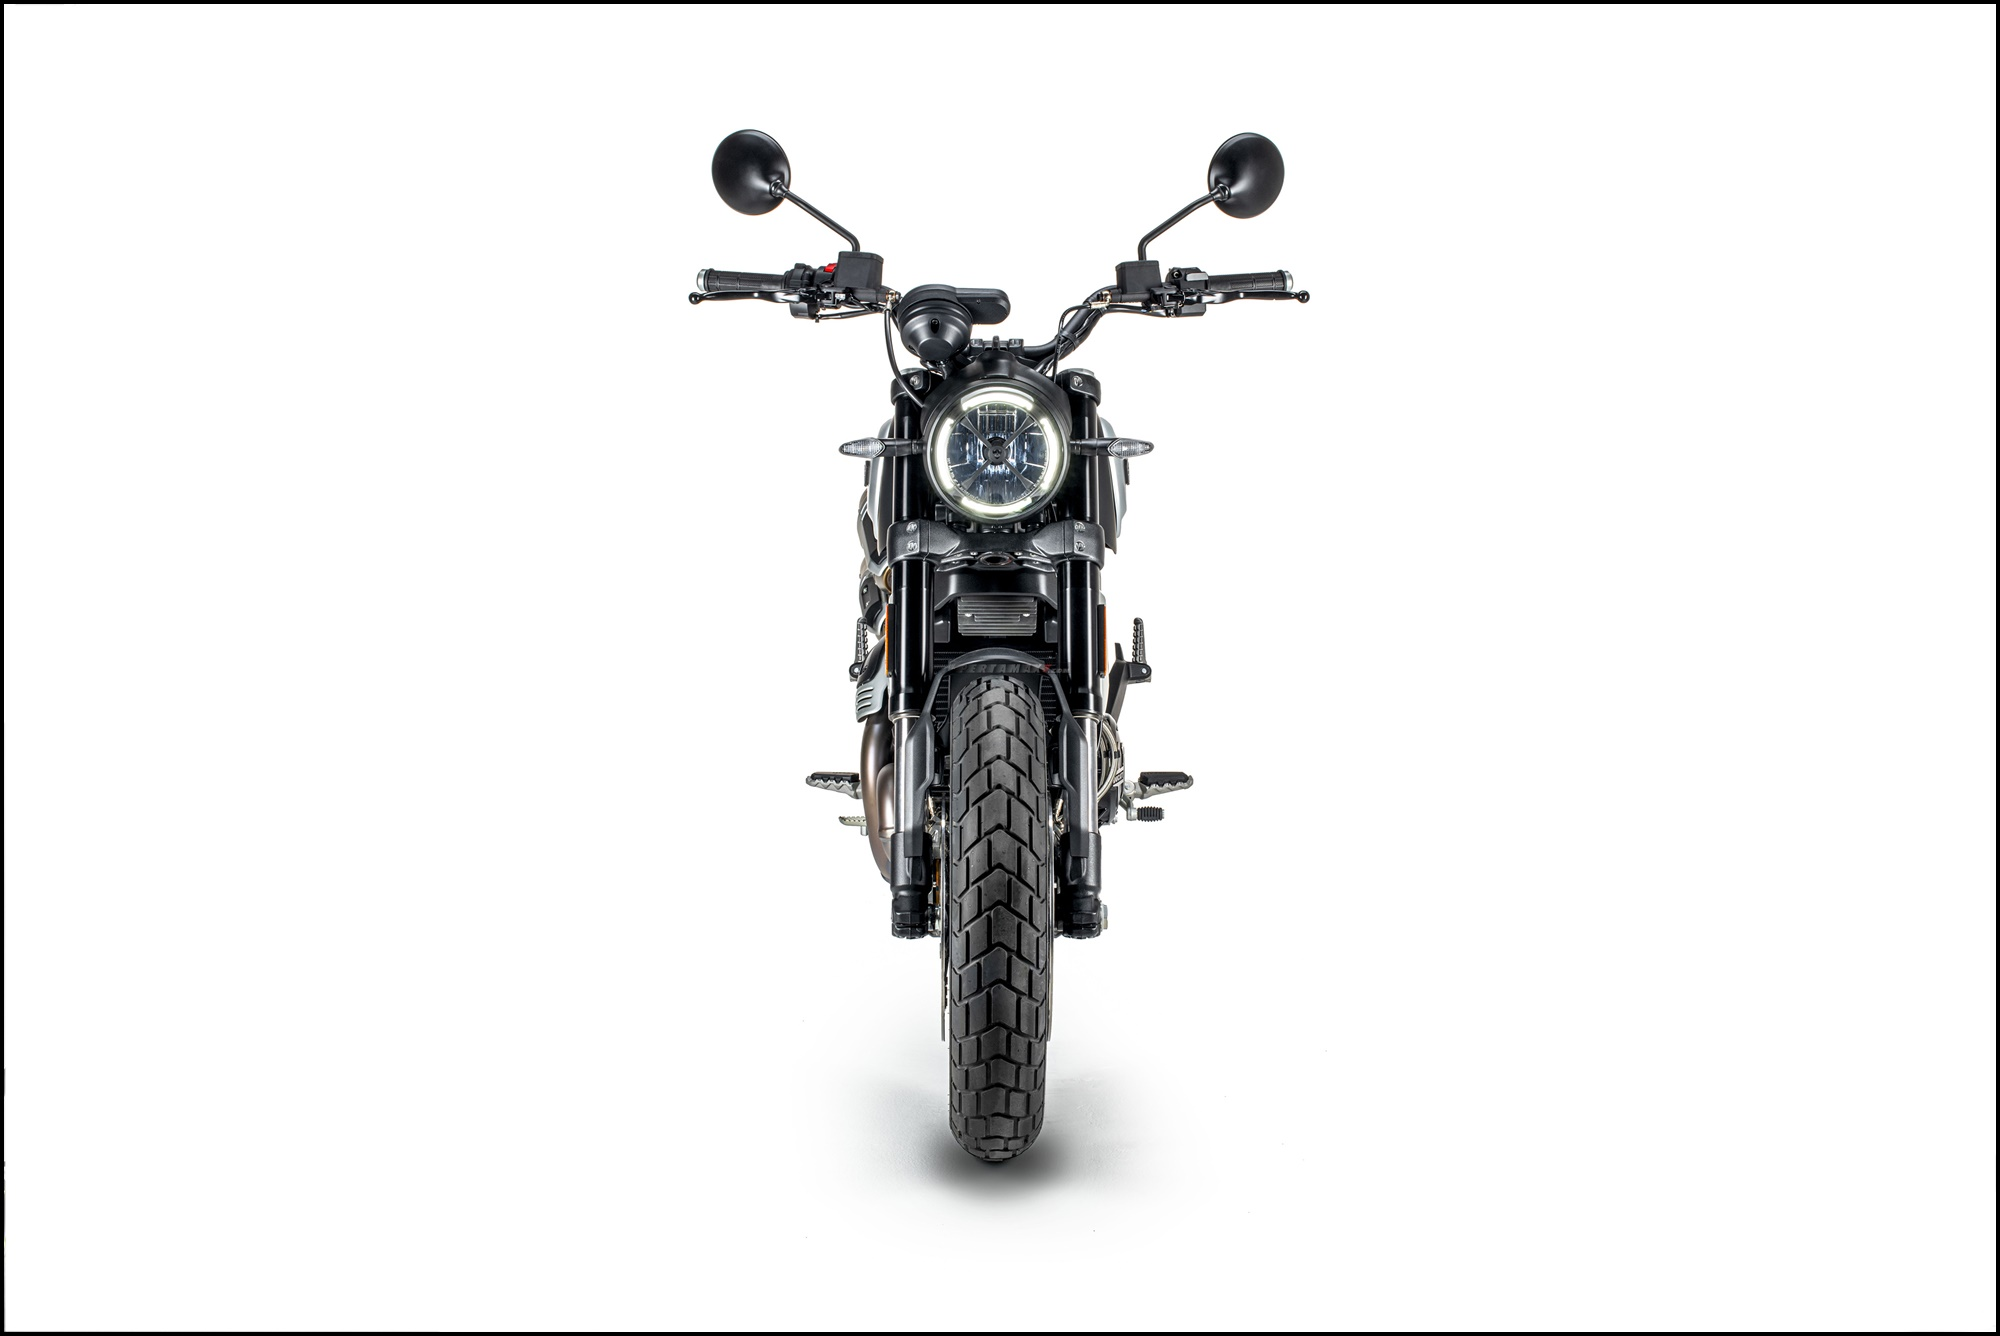 Wallpaper Ducati Scrambler 1100 PRO Dark Version